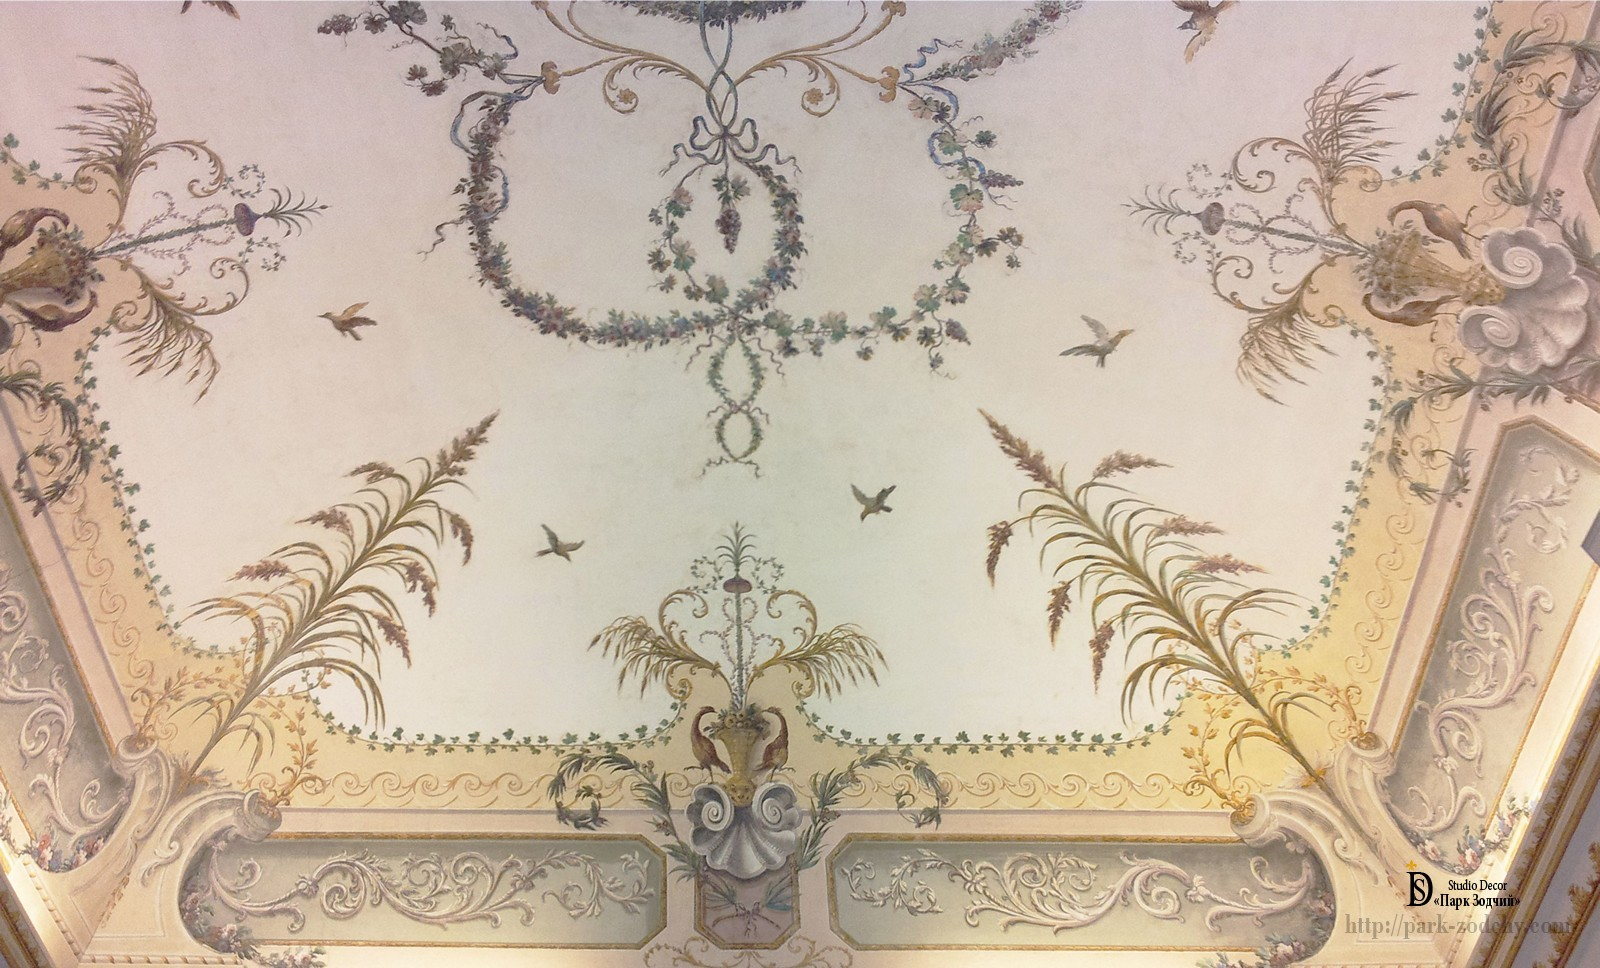 Painted ceiling in the lobby of a country house